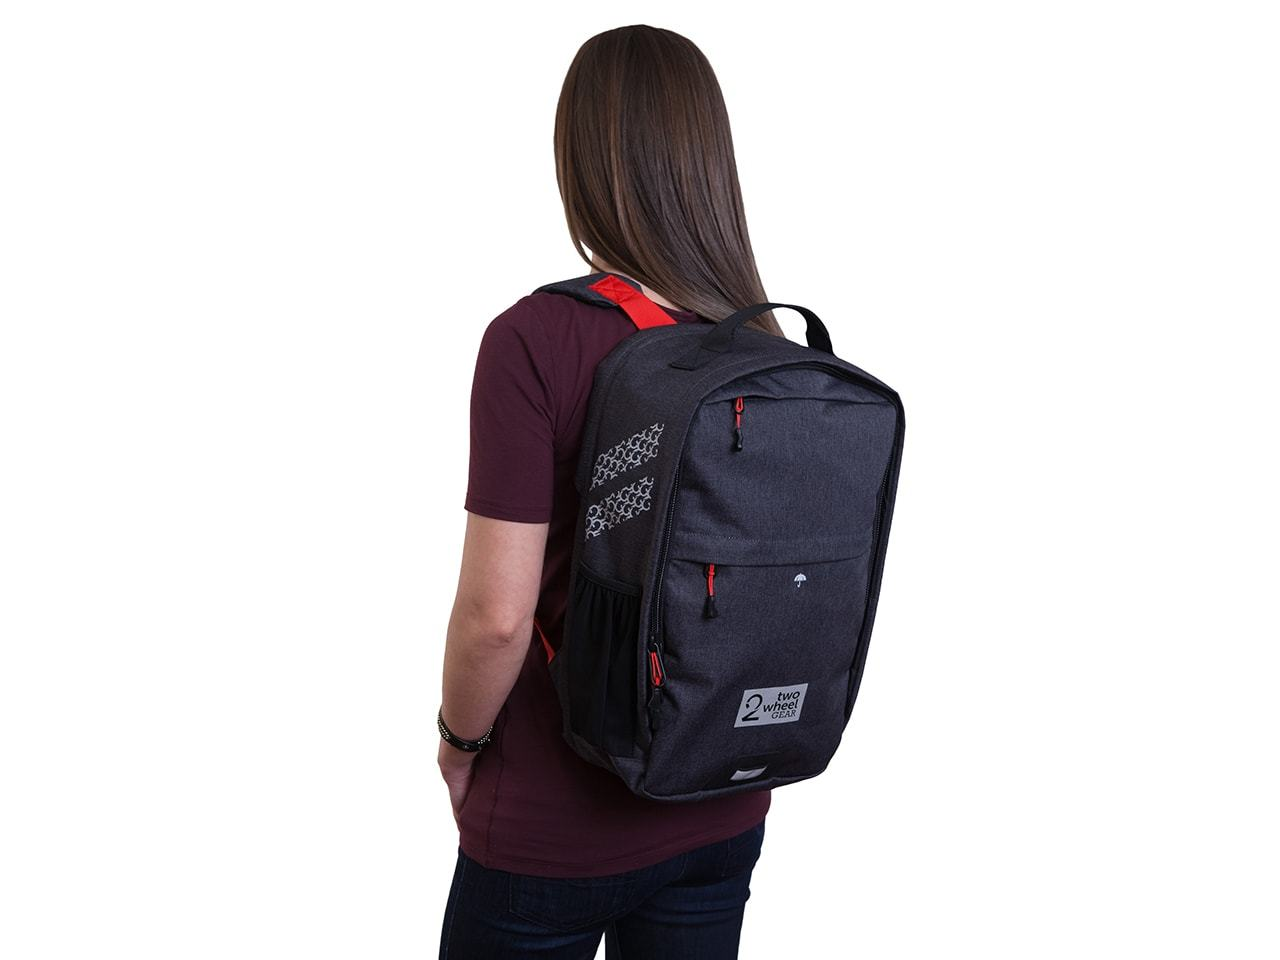 Bags - Pannier Backpack Convertible - Graphite (2017)